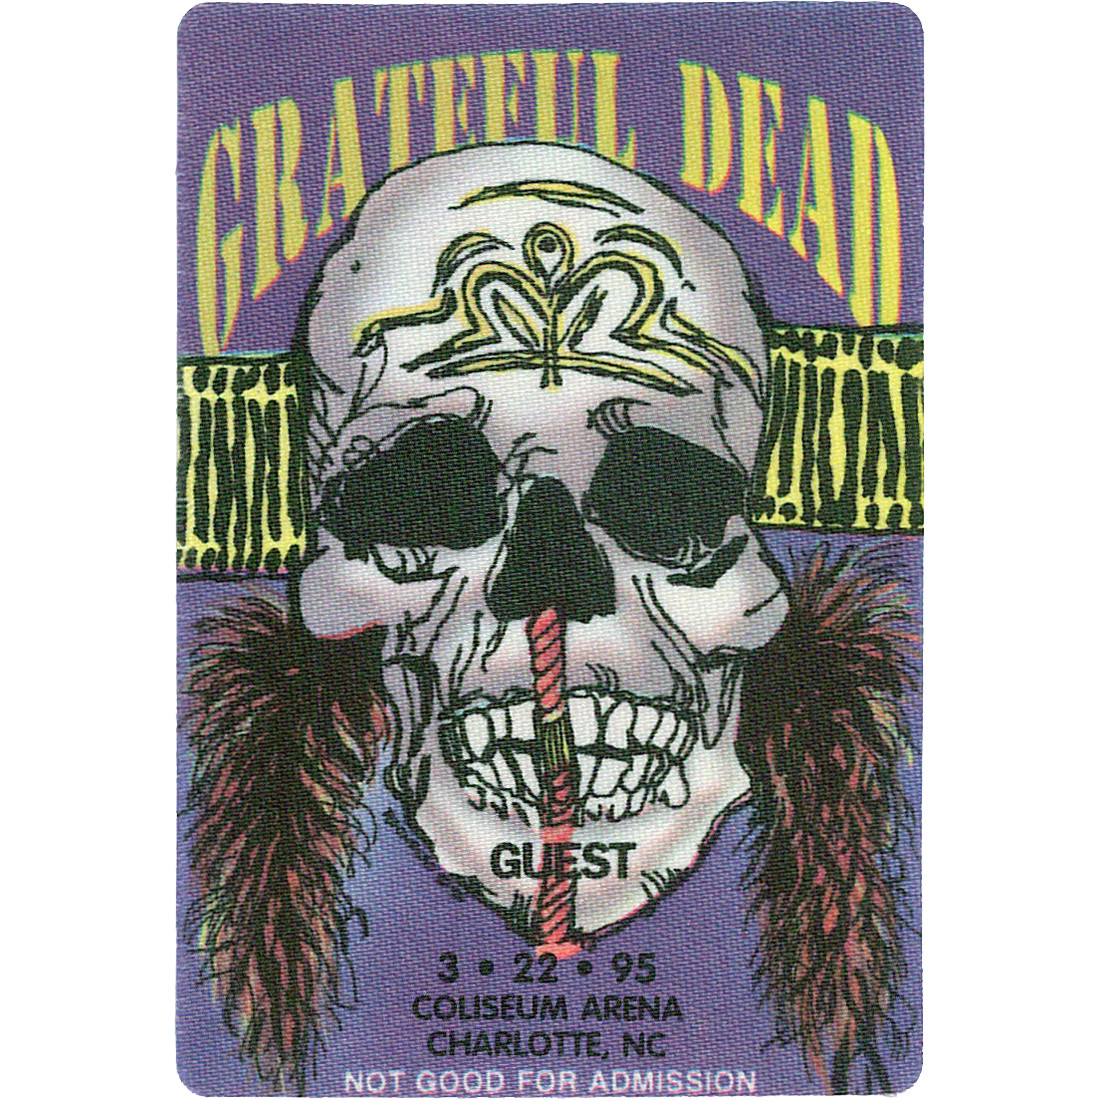 Grateful Dead 1995 03-22 Backstage Pass